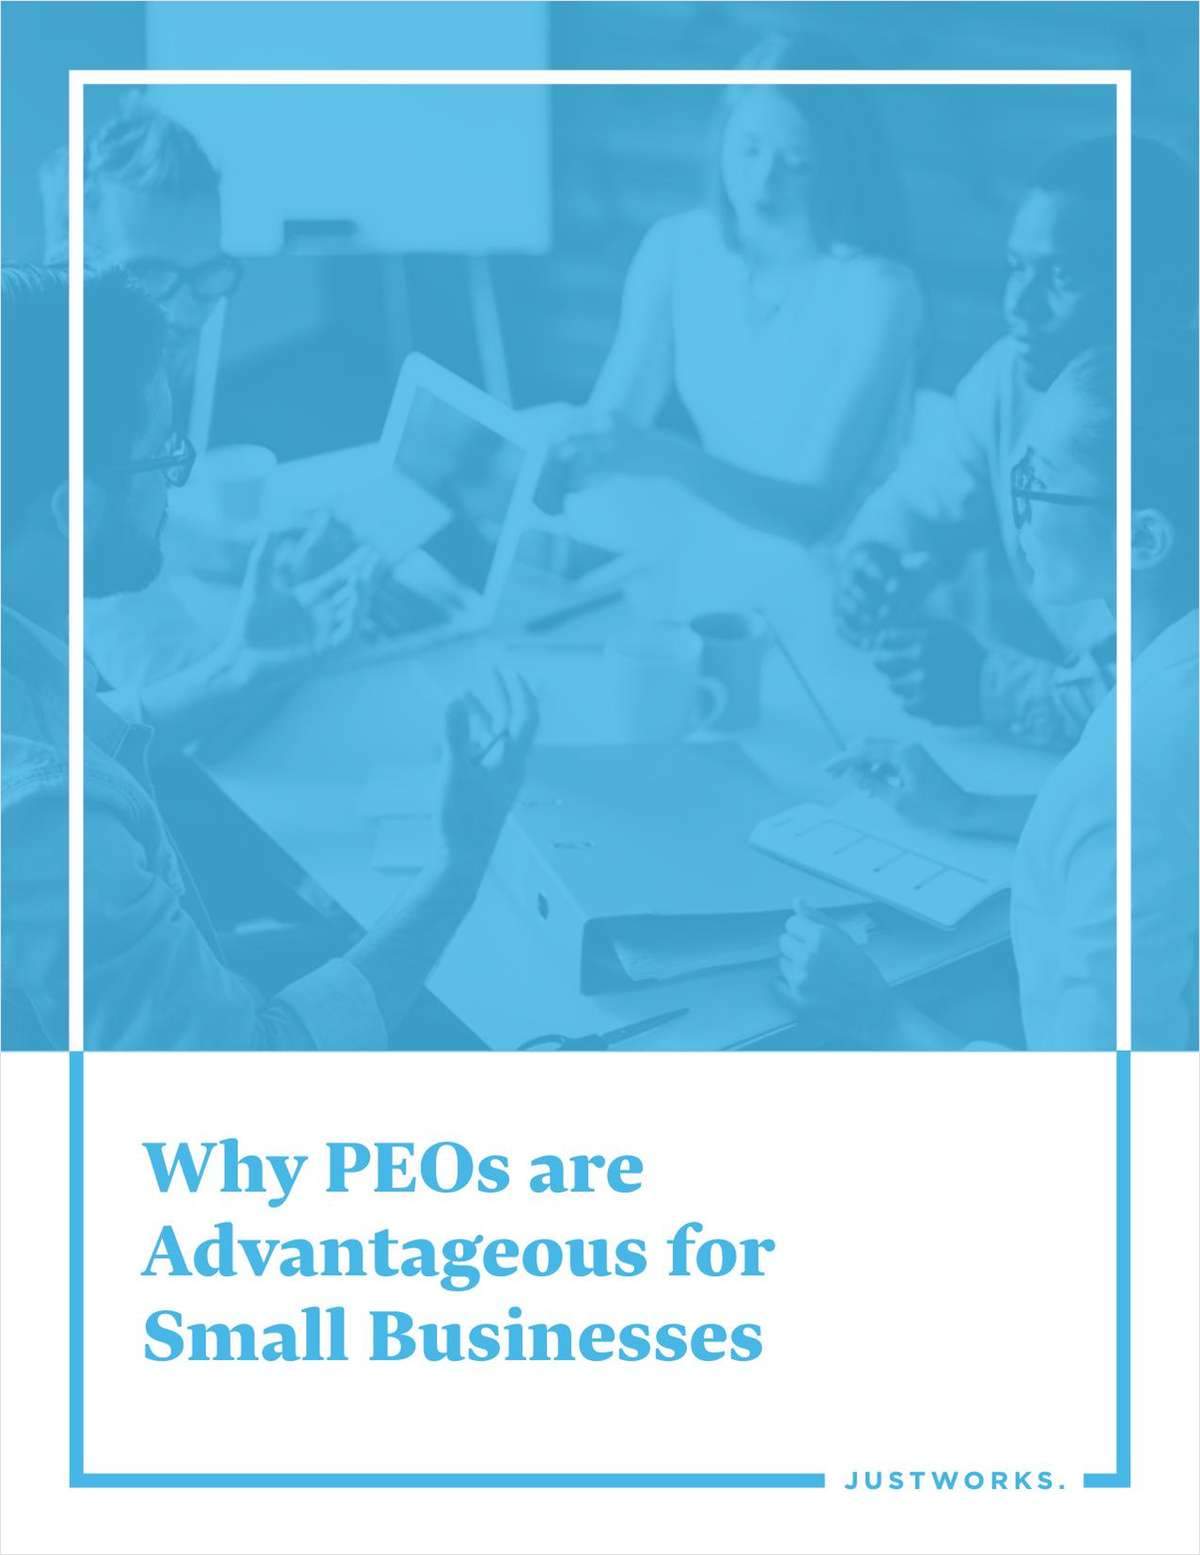 Why PEOs are Advantageous for Small Businesses